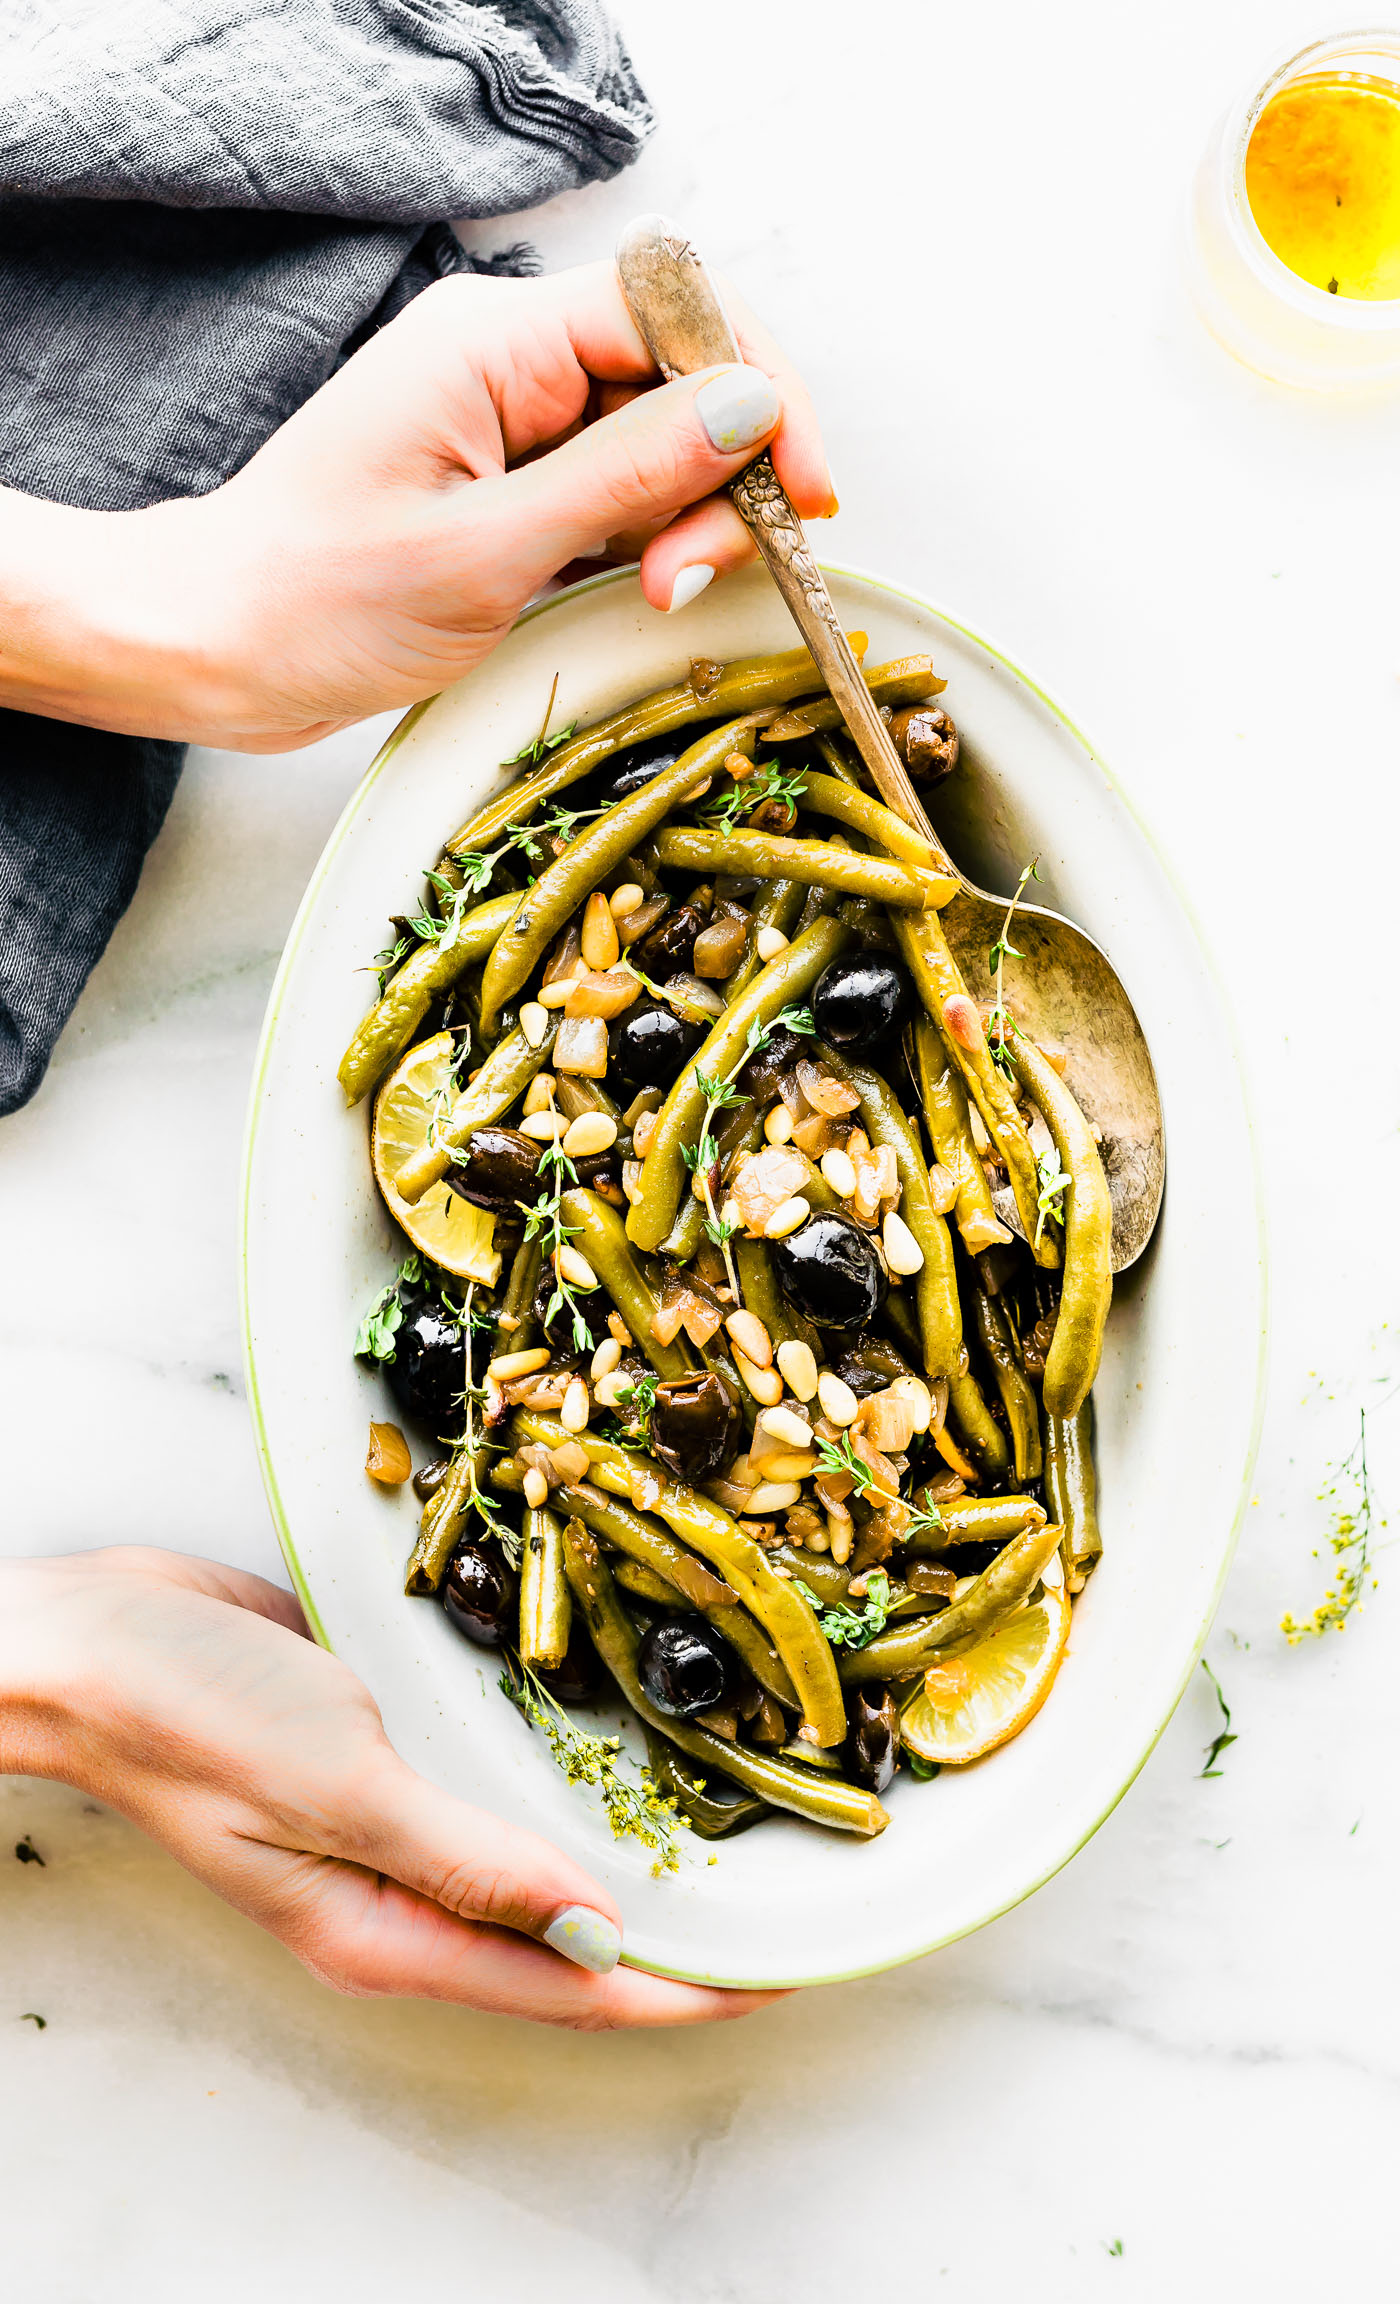 Balsamic braised green Beans are a quick healthy side dish. Fresh green beans, thyme, balsamic vinegar, olive-oil, black olives, onion & toasted pine nuts. Paleo, vegan friendly.